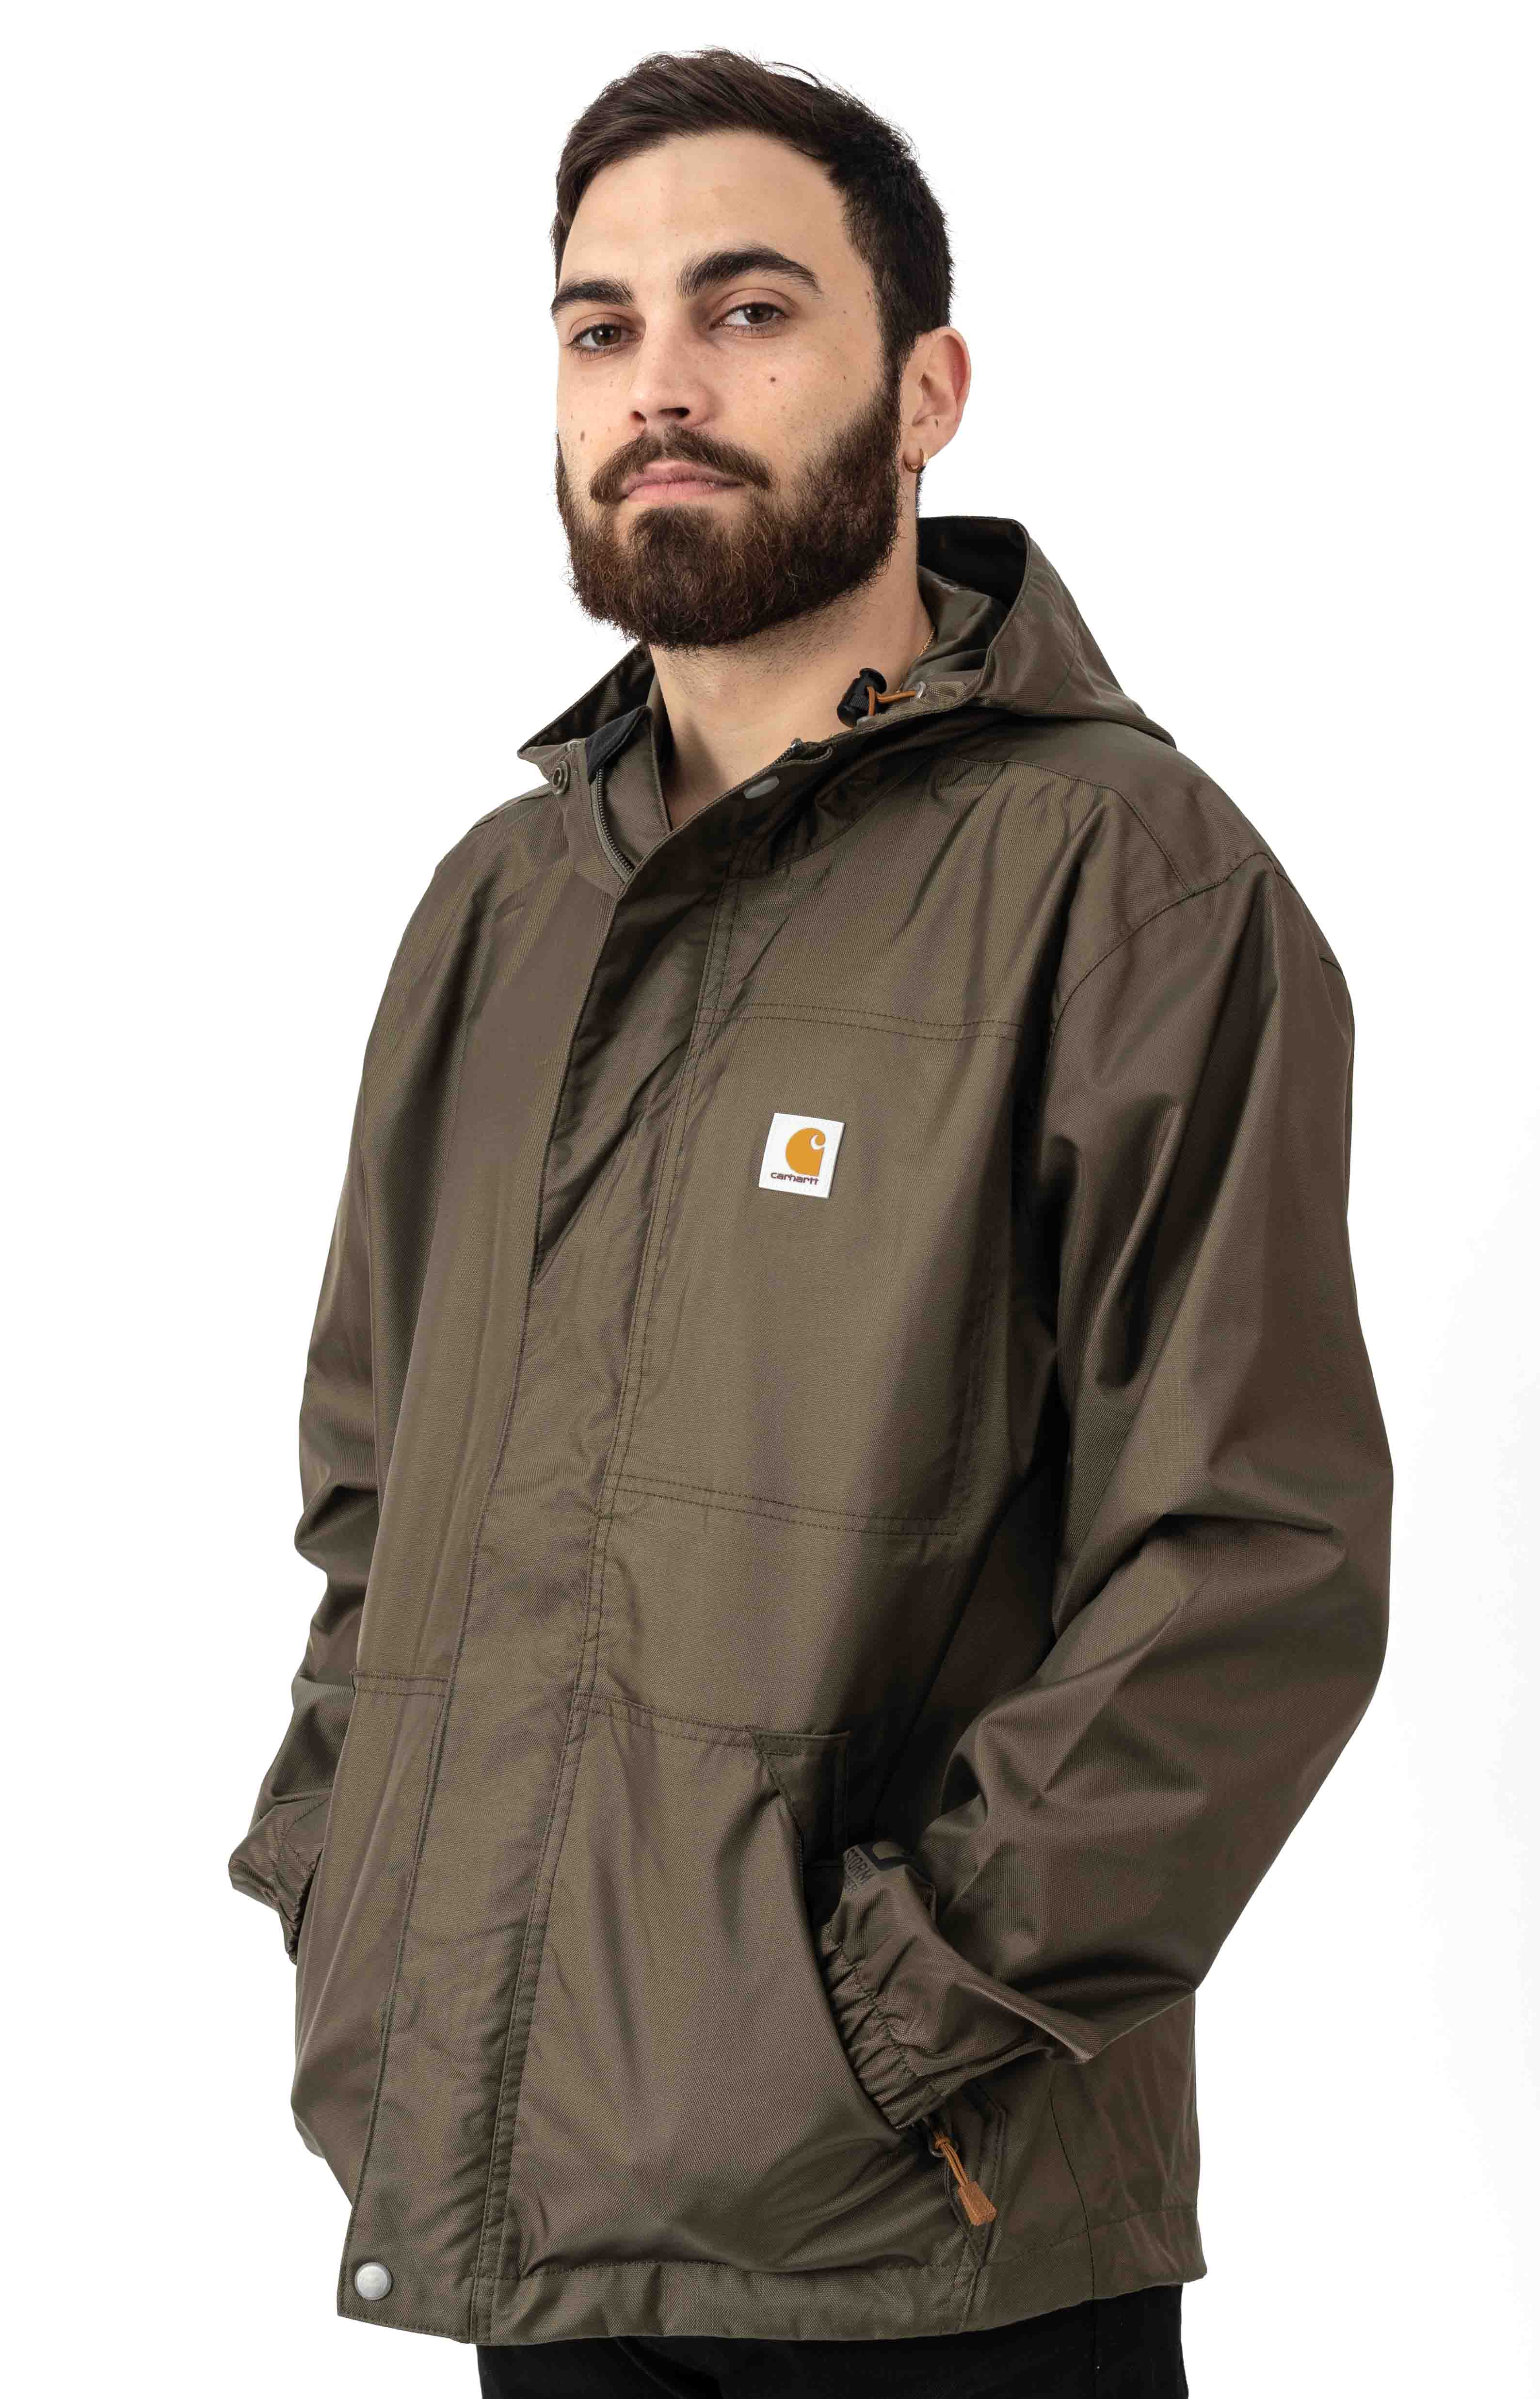 (103510) Dry Harbor Waterproof Breathable Jacket - Tarmac  2